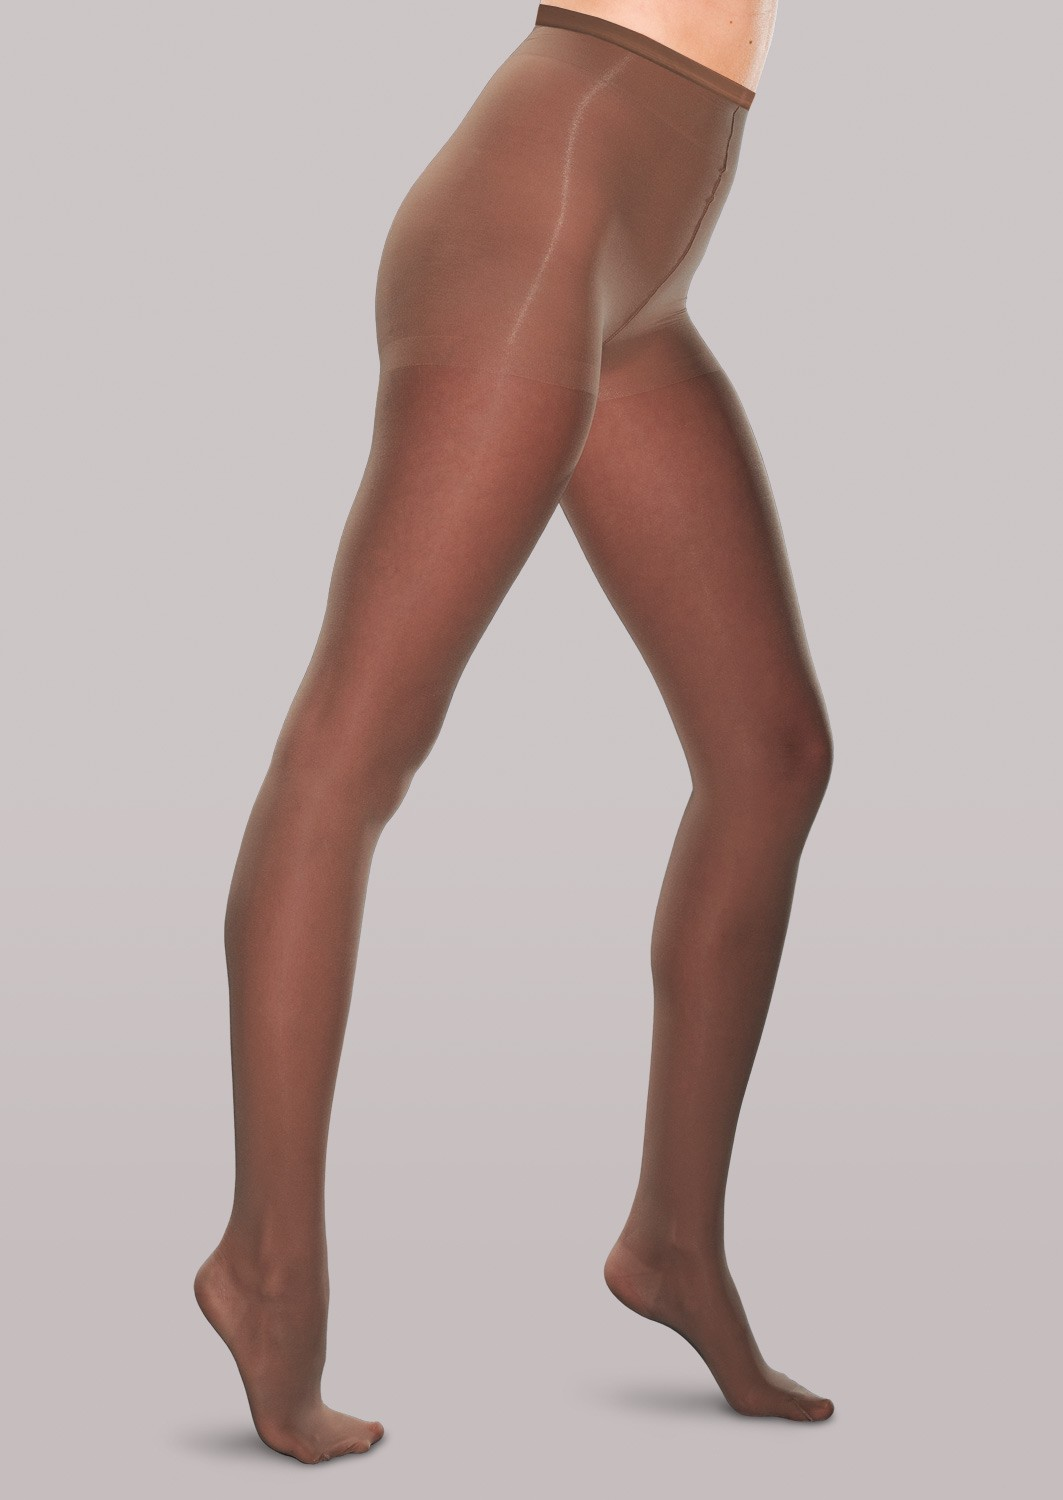 S Pantyhose Are Sheer 71